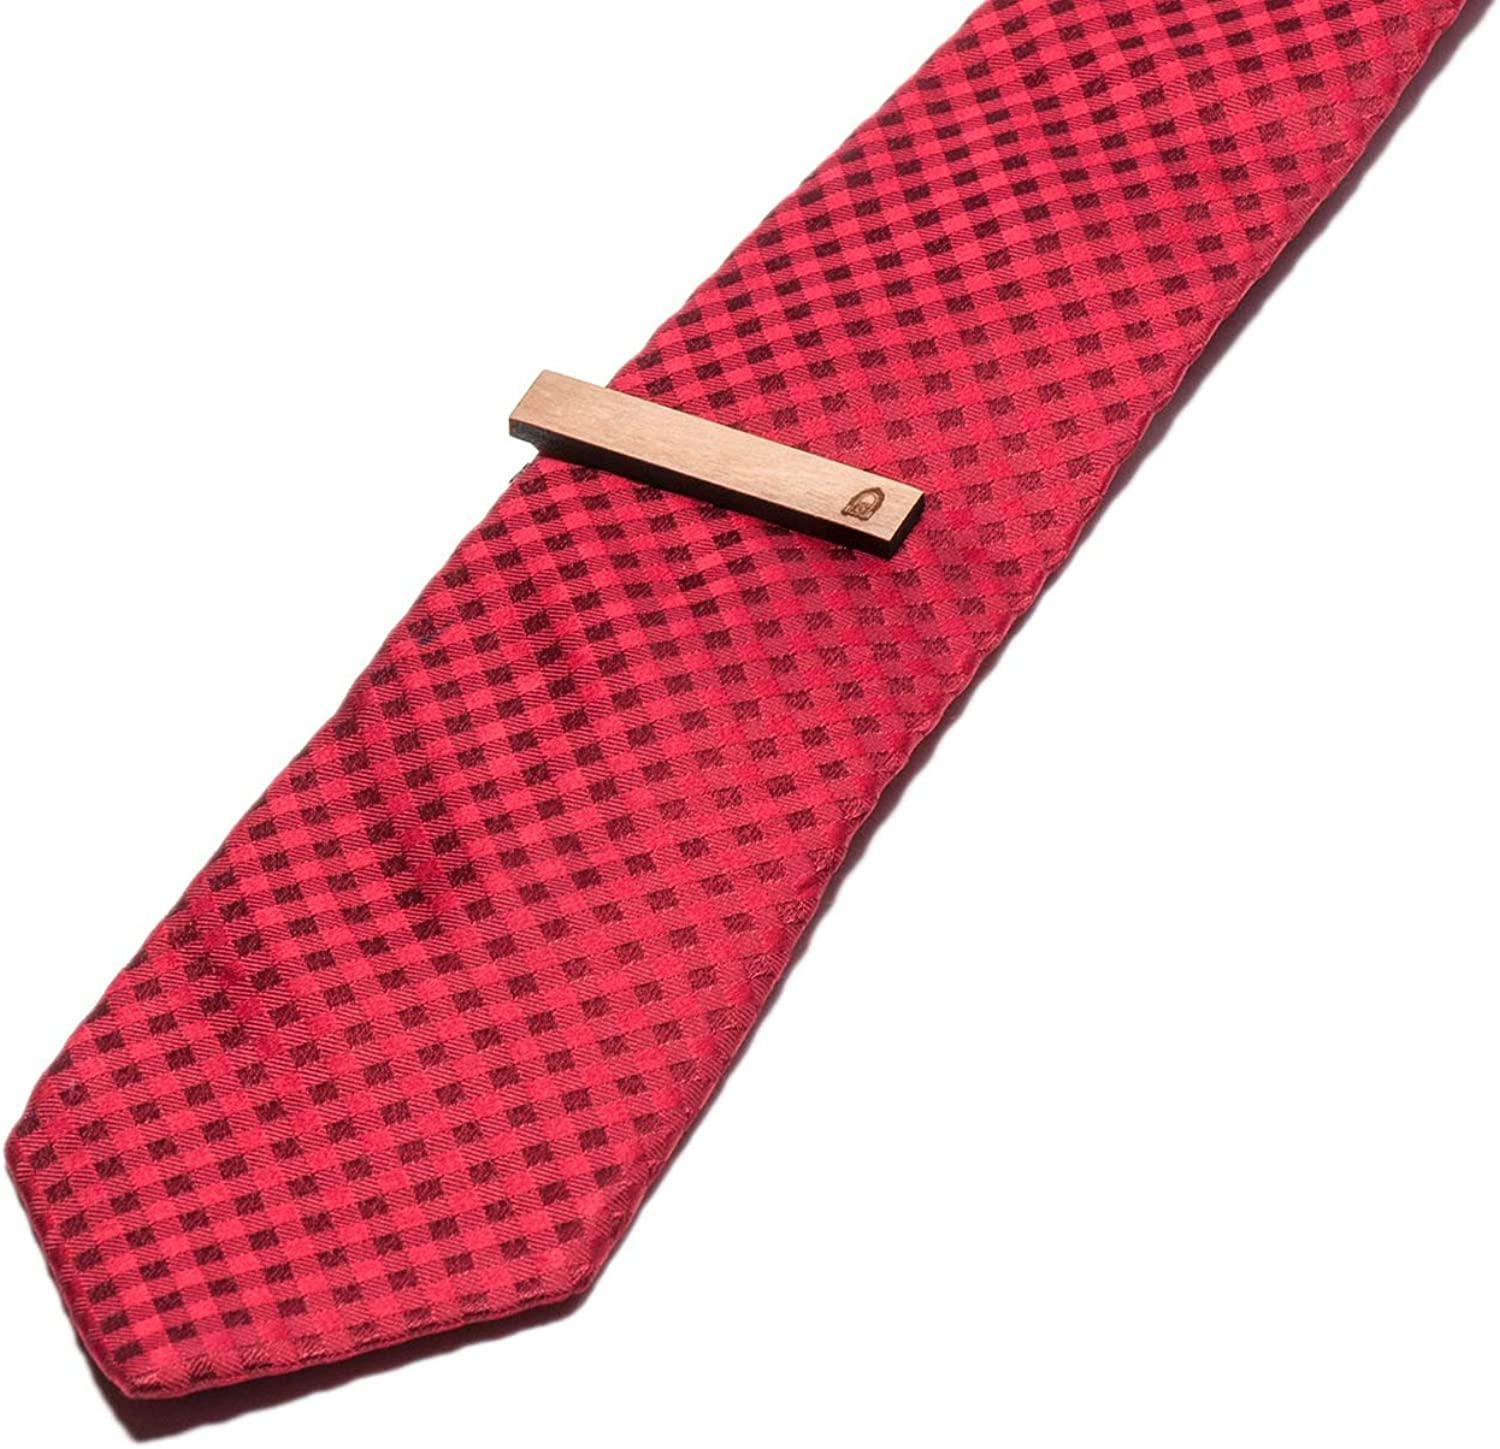 Wooden Accessories Company Wooden Tie Clips with Laser Engraved Jukebox Design Cherry Wood Tie Bar Engraved in The USA